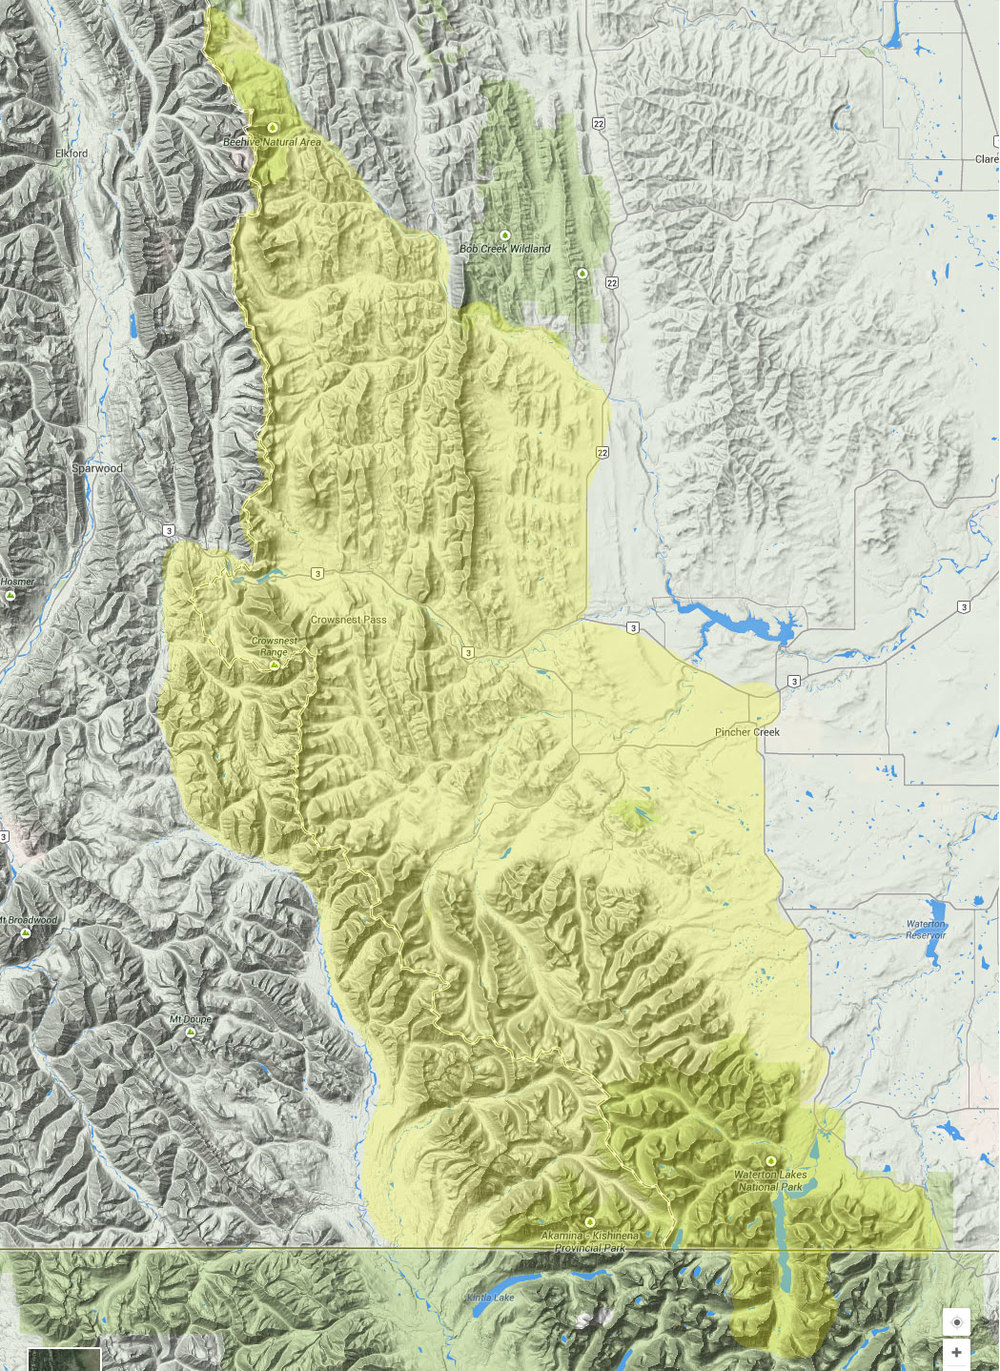 The home range of the Southern Alberta section